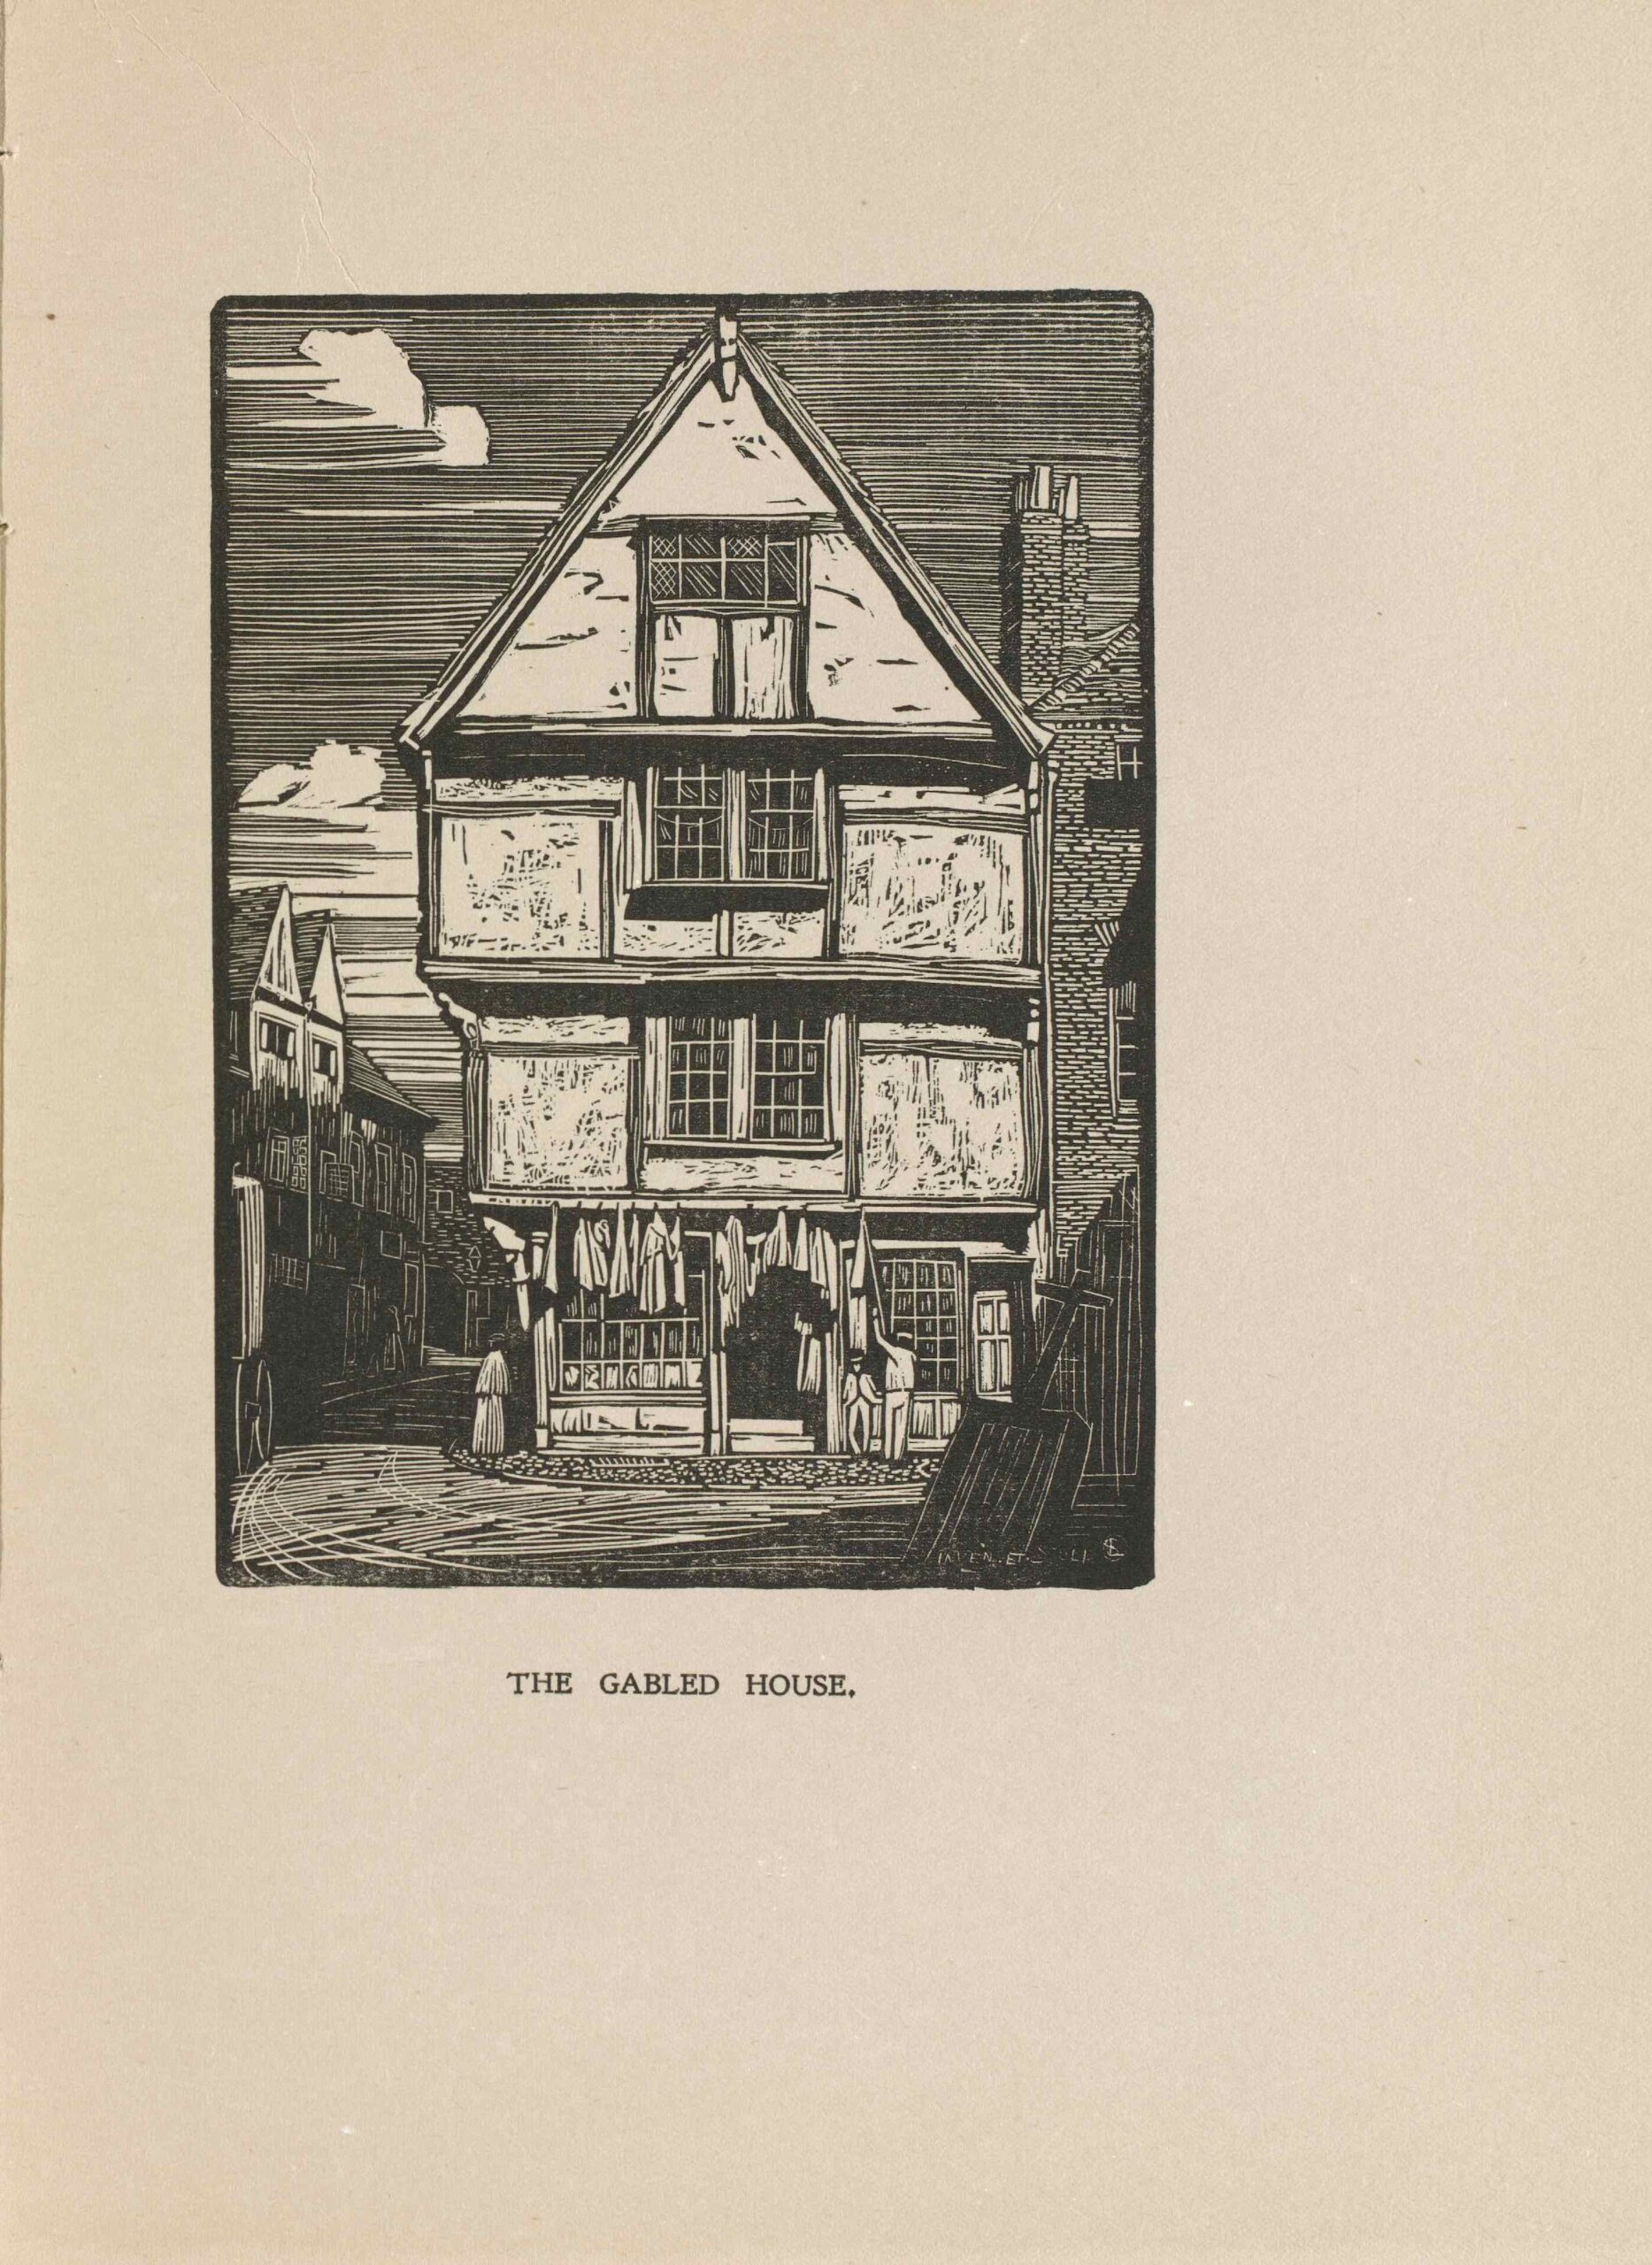 The image is in portrait orientation and is centered on the page within a rectangular border. The image printed in black ink. The front of a lightly coloured Tudor-style house is centered in the foreground of the image. The house is on the corner of a street and is four stories high. There are two-paneled windows in the middle of every story except for the first floor. Each storey slightly increases in length from the bottom to the top, protruding on the left. The house is attached to a bricked building on the right. The brick building is only partially depicted. There are three small figures depicted in the image. Two men are positioned to the right of the house's front door. One is leaning on the door frame facing forward, and the other is facing towards the front of the house. A woman is standing at the corner of the street, to the left of the house. In the bottom left foreground, a carriage is entering the image. A shovel is positioned close to the front of the image's bottom right. In the background left, more houses line the street but are darkened by the shadow of the house in the foreground.